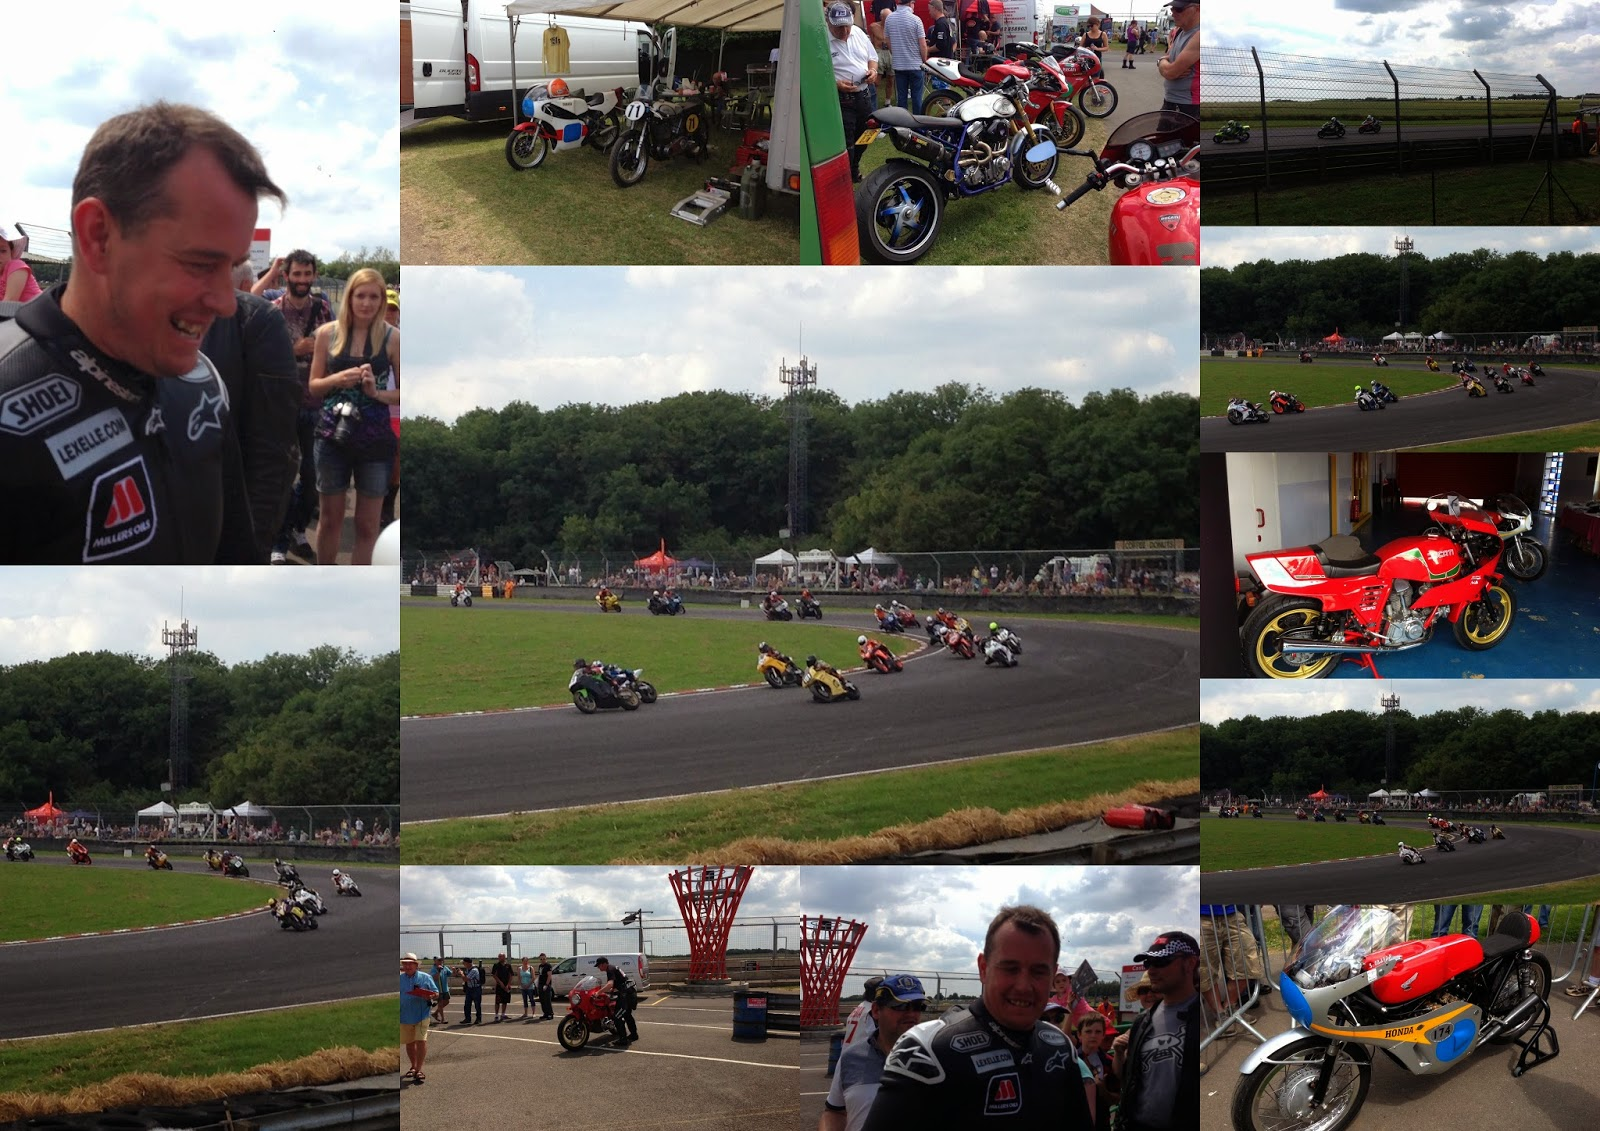 Castle Combe Grand National Motorcycle Race Meeting